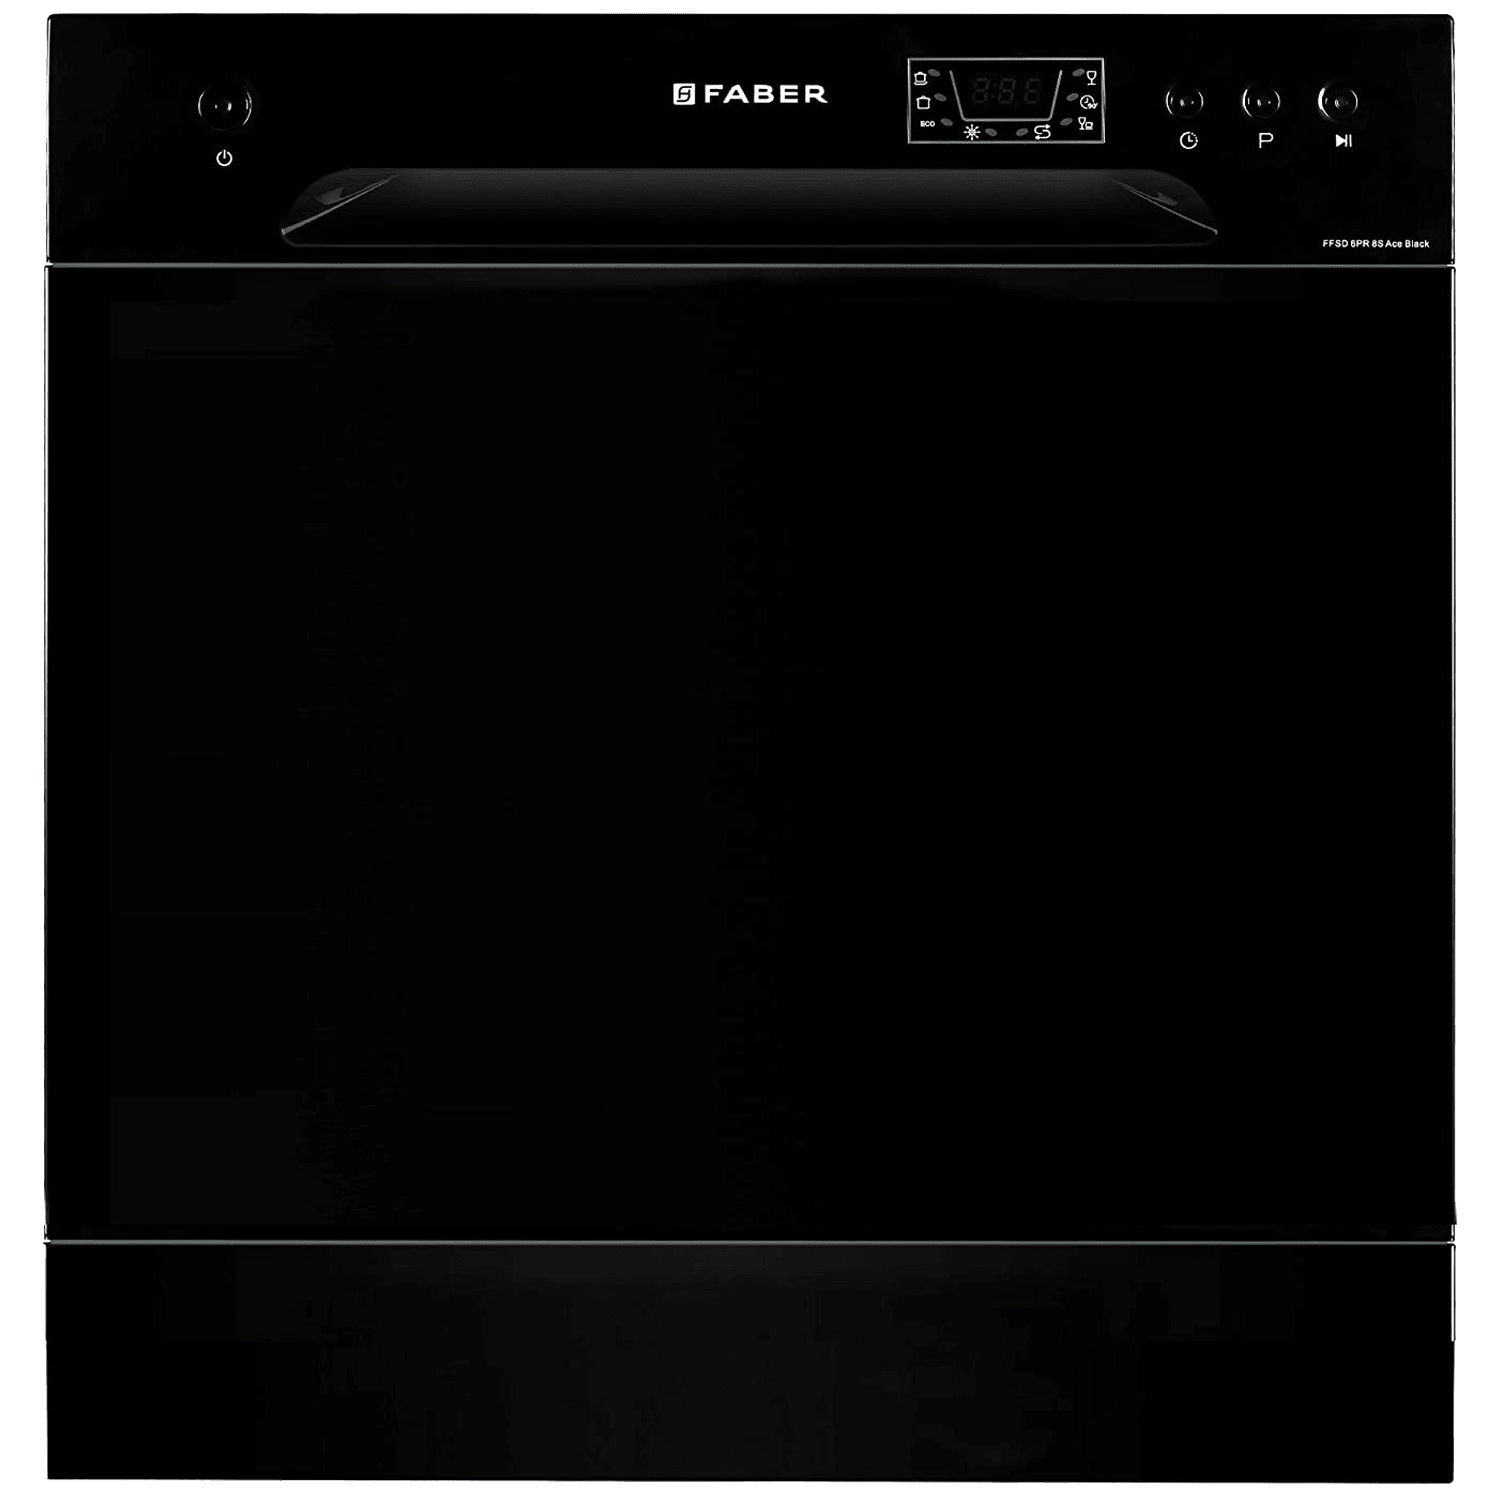 Faber 8 Place Setting Counter Top Dishwasher (Self Clean Filter System, FFSD 6PR 8S Ace, Black)